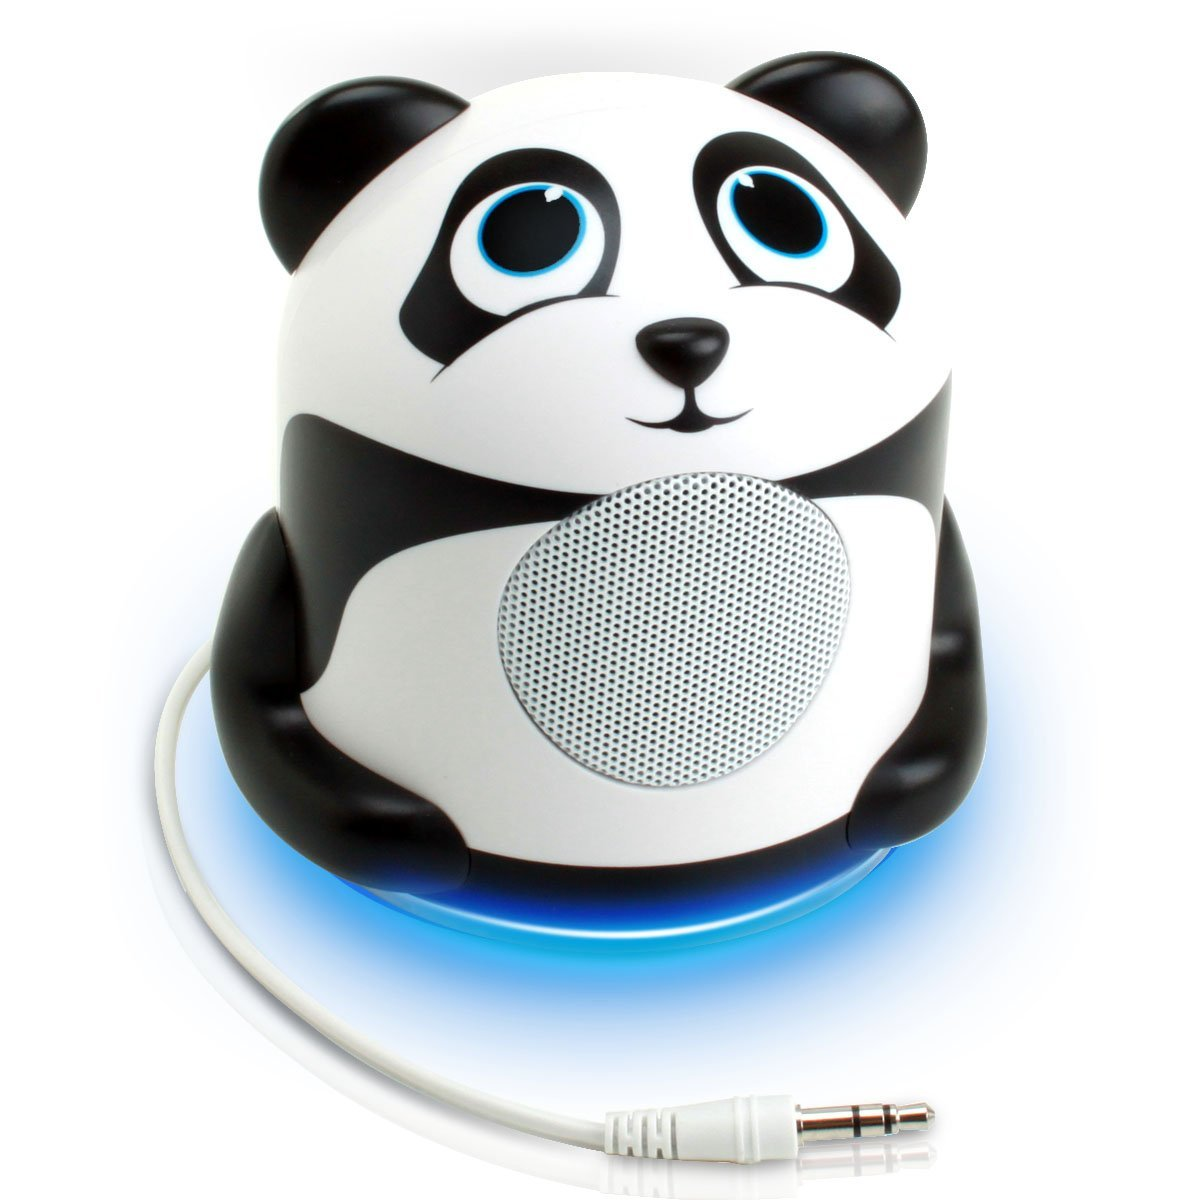 Cool Panda Inspired Products And Designs 15 2